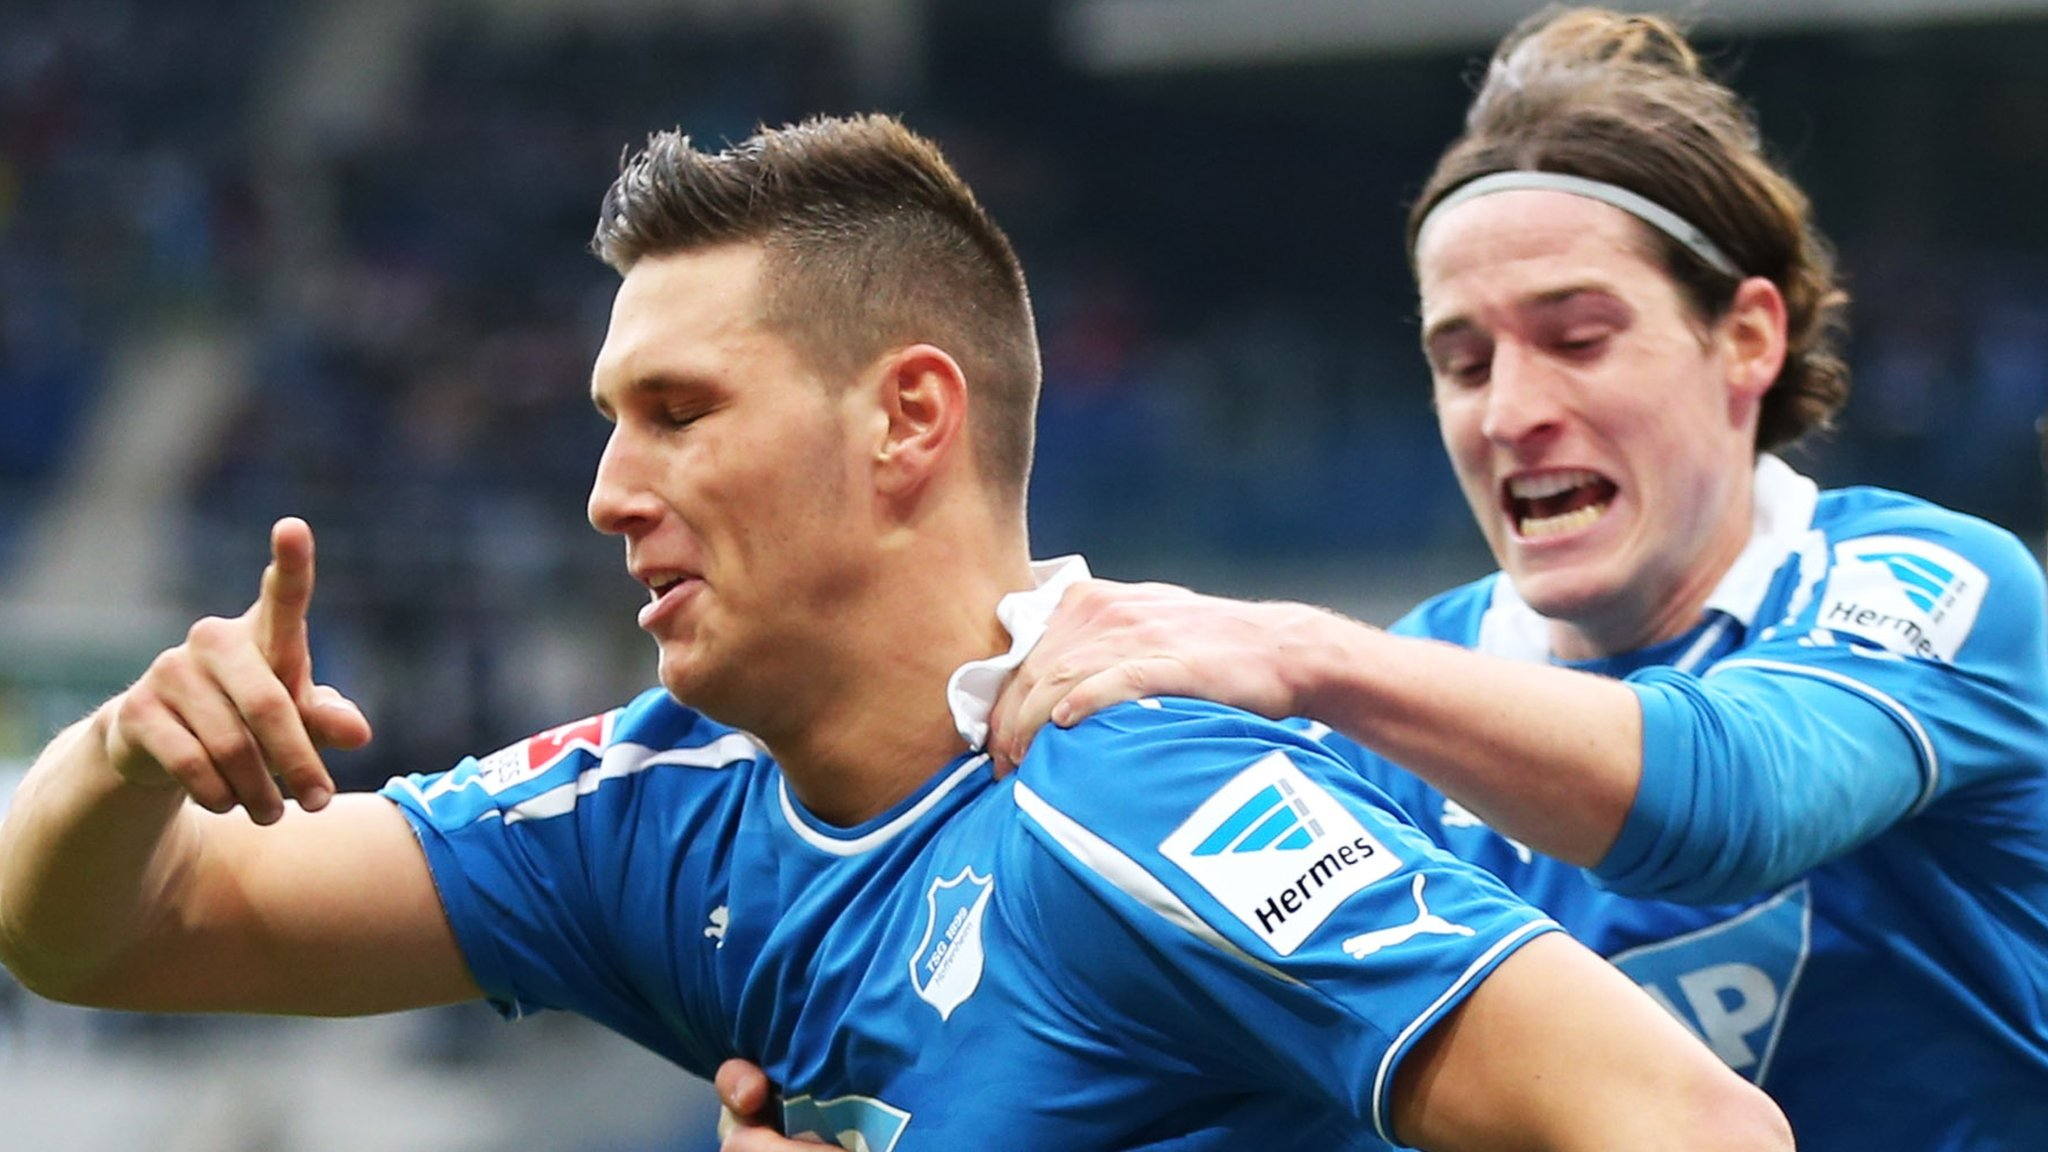 Bayern Munich sign Rudy and Sule from Hoffenheim